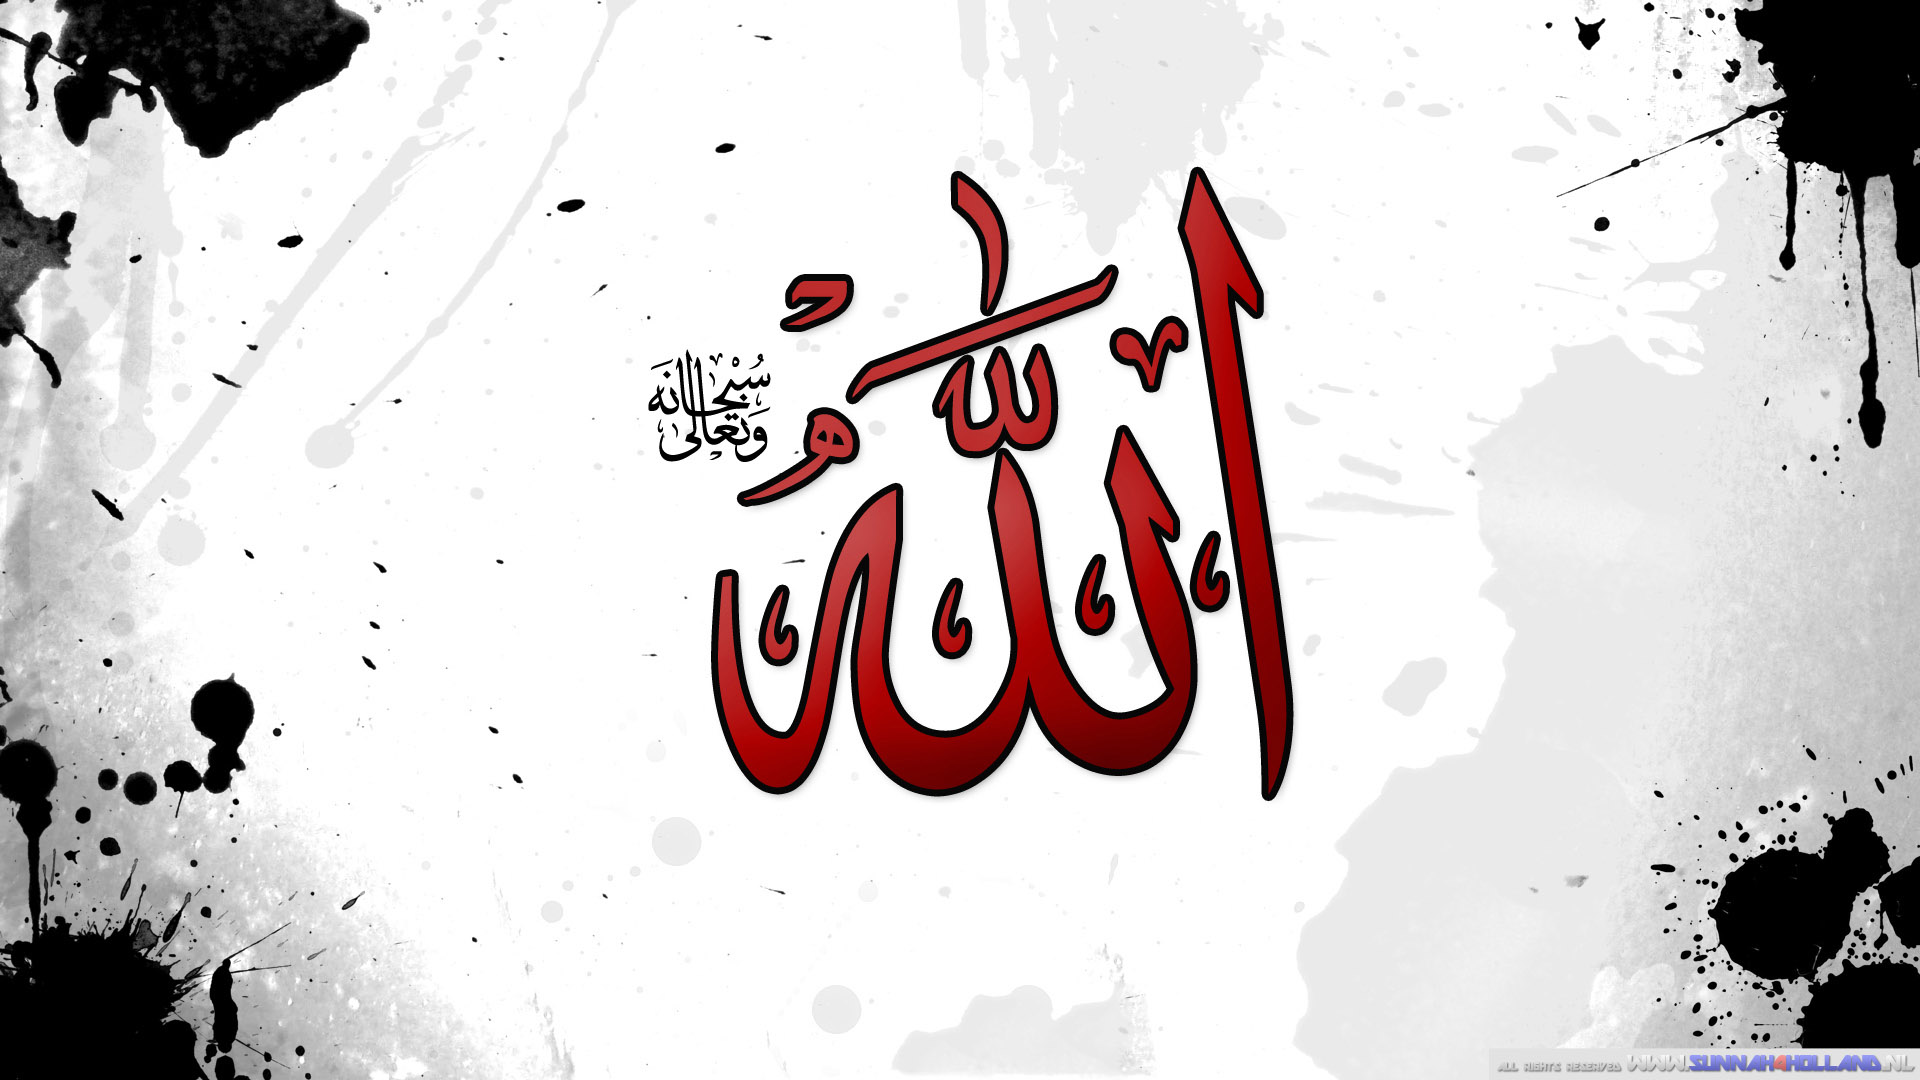 Allah Live Wallpaper  Android Apps on Google Play 1920x1080